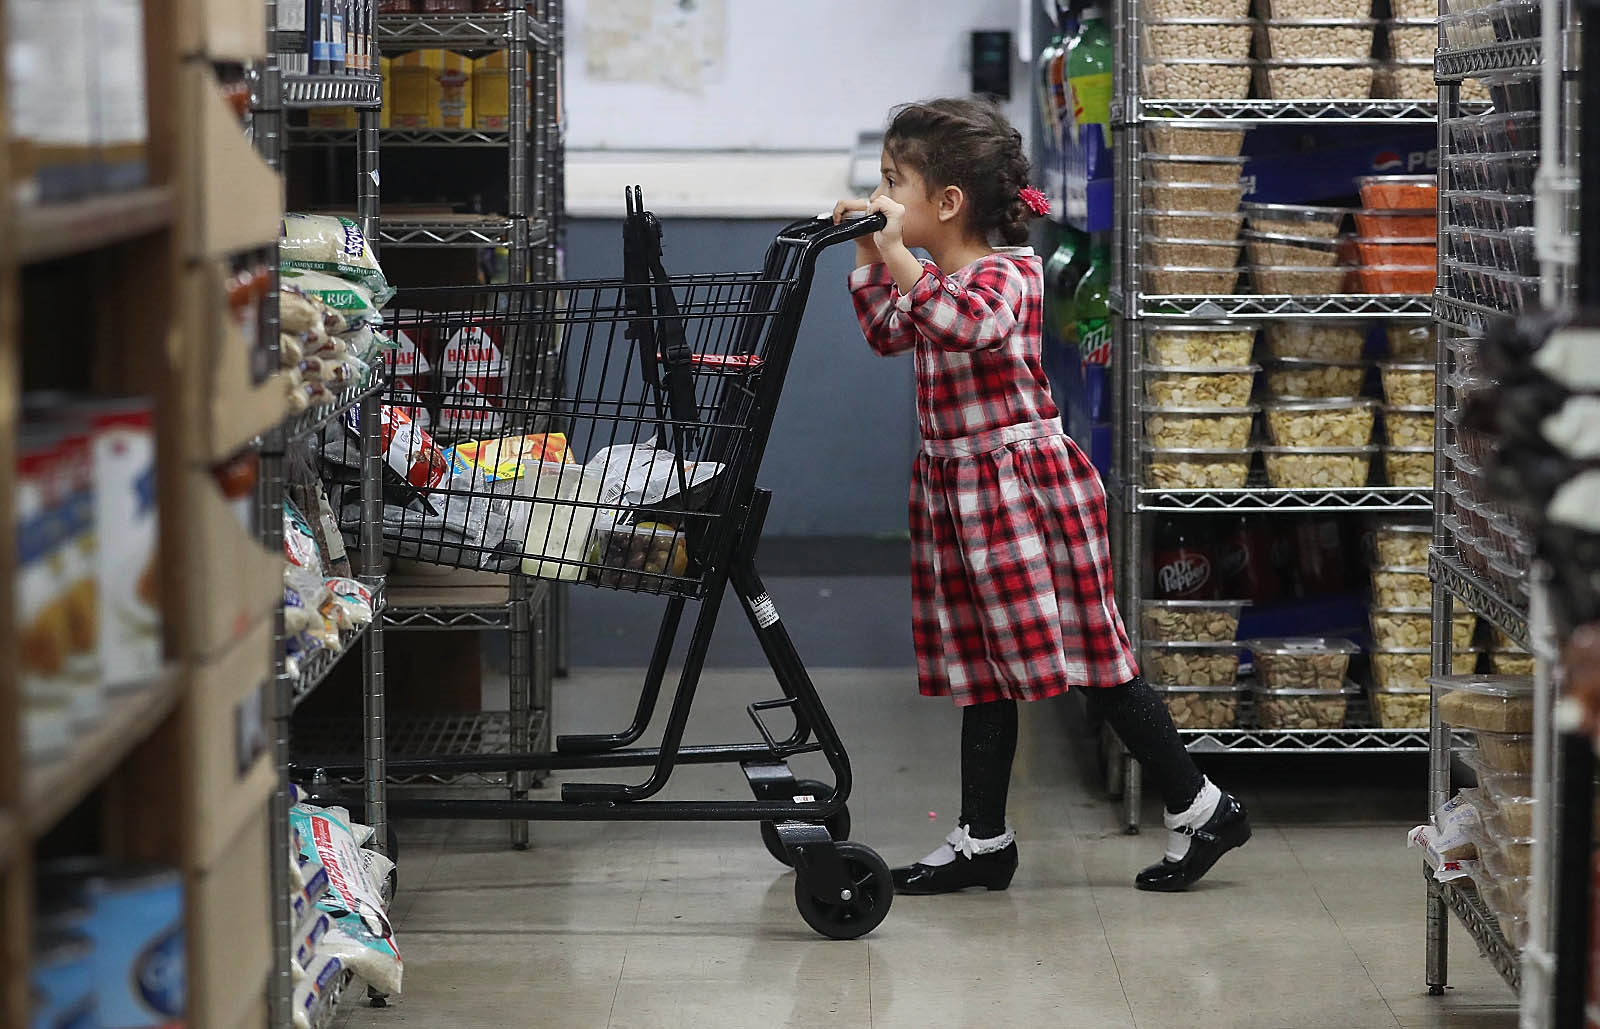 Guercio & Sons is a historic Grant Street food shop. Sedra Abokefaya, 4, pushes the cart as her family shops there.